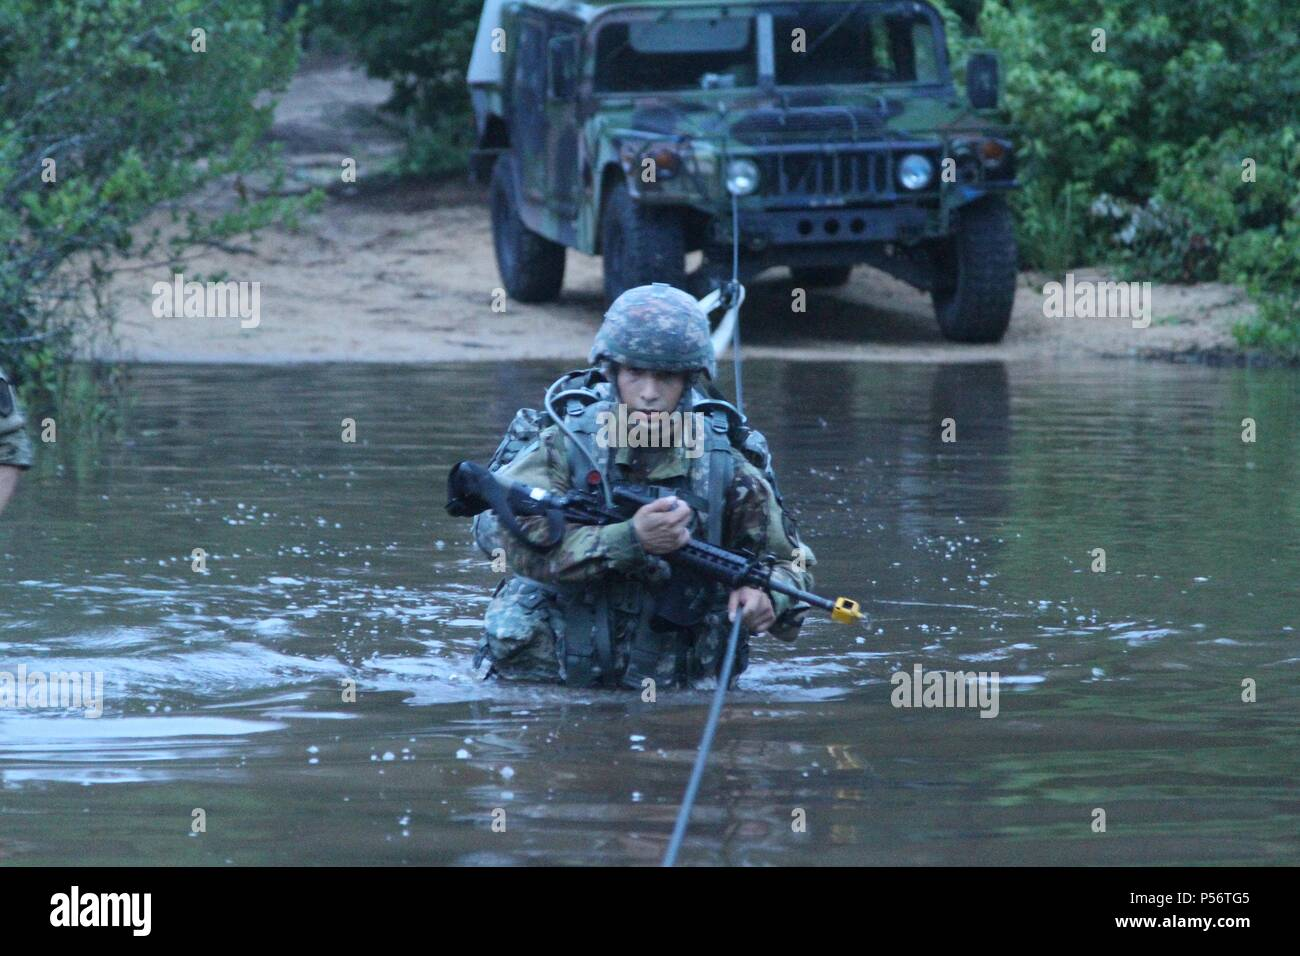 U.S. Army Reserve Spc, June 12, 2018. Nicholas Cholula, a combat documentation production specialist representing the 311th Signal Command Theater Support Unit crosses the river during the ruck march event at the 2018 U.S. Army Reserve Best Warrior Competition at Fort Bragg, North Carolina, June 12, 2018. The grueling, multifaceted competition evaluated U.S. Army Reserve Soldiers in the ruck march, the Excellence in Competition pistol range, the German Armed Forces Proficiency Badge and several other events with more challenges to come. (U.S. Army Reserve photo by Sgt. Rachel A. Leis) (Release - Stock Image